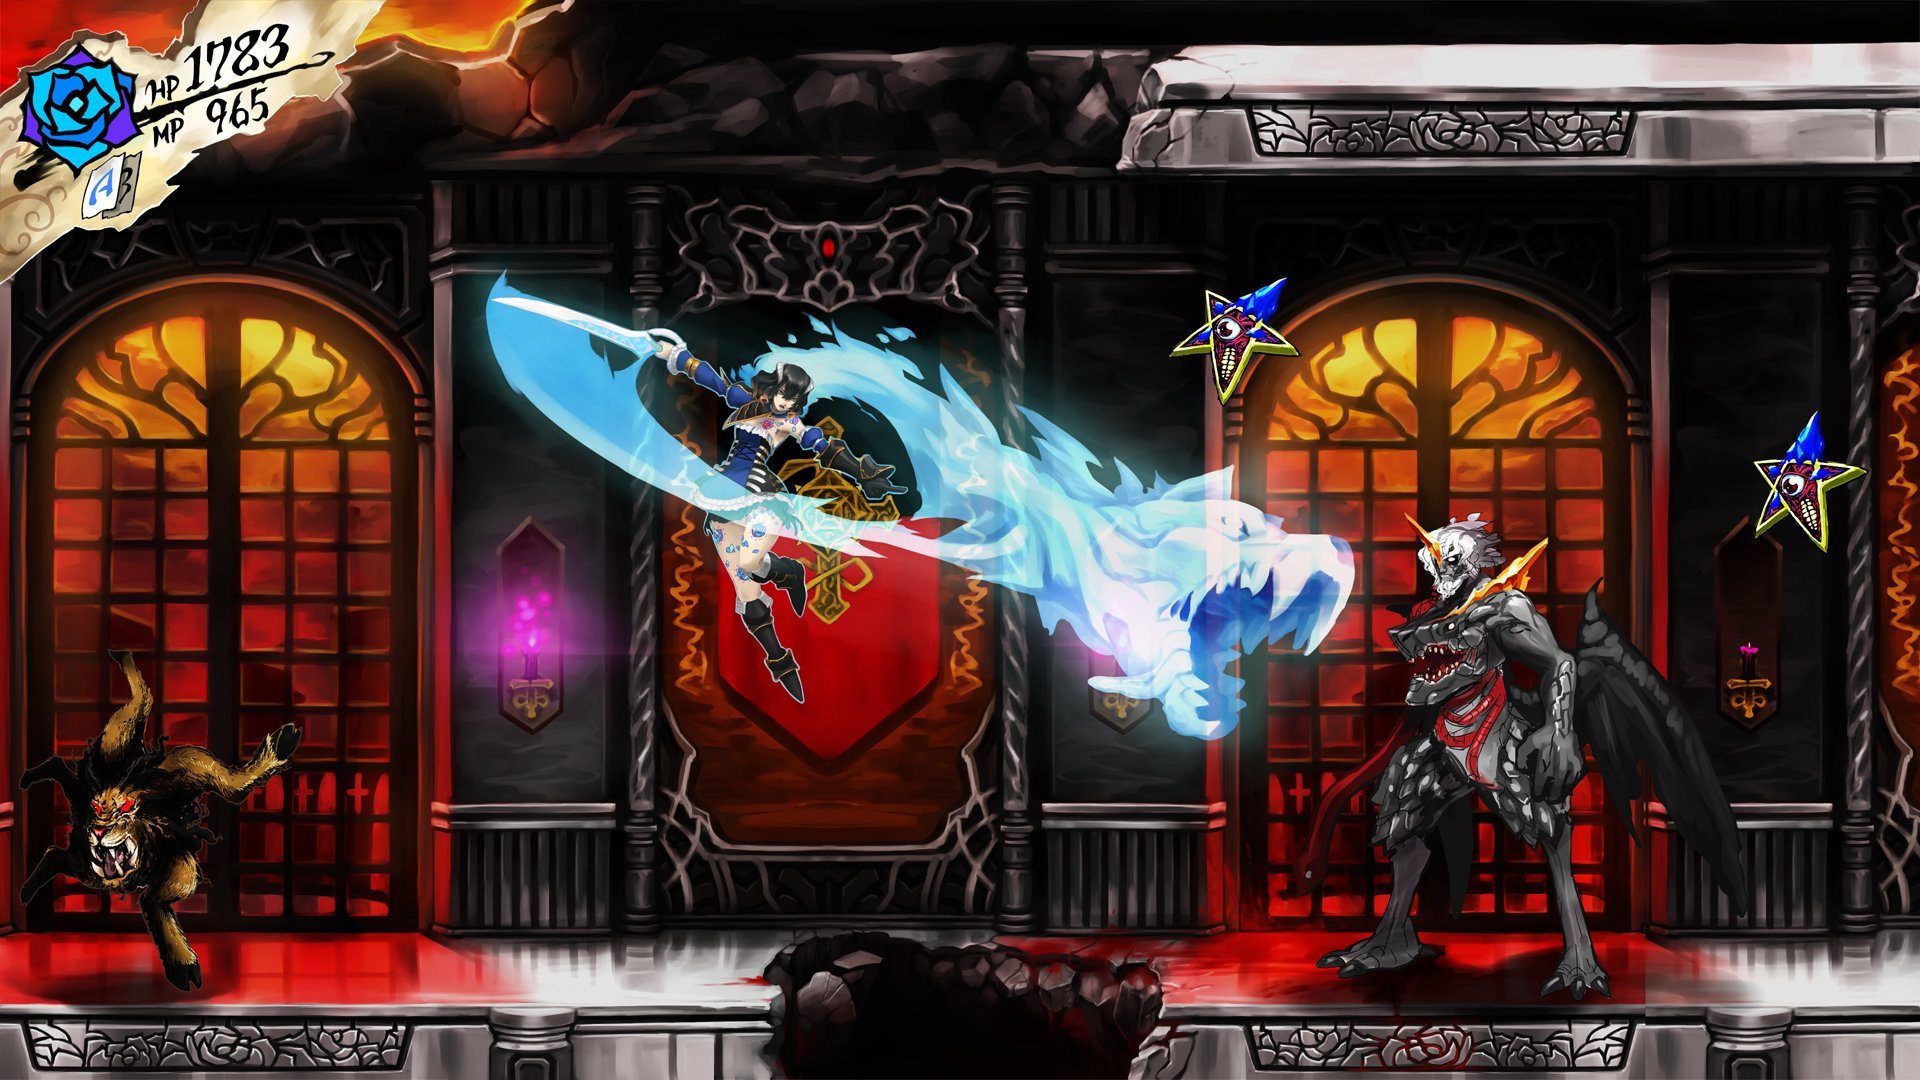 Castlevania's IGA back with 'dream game' Bloodstained